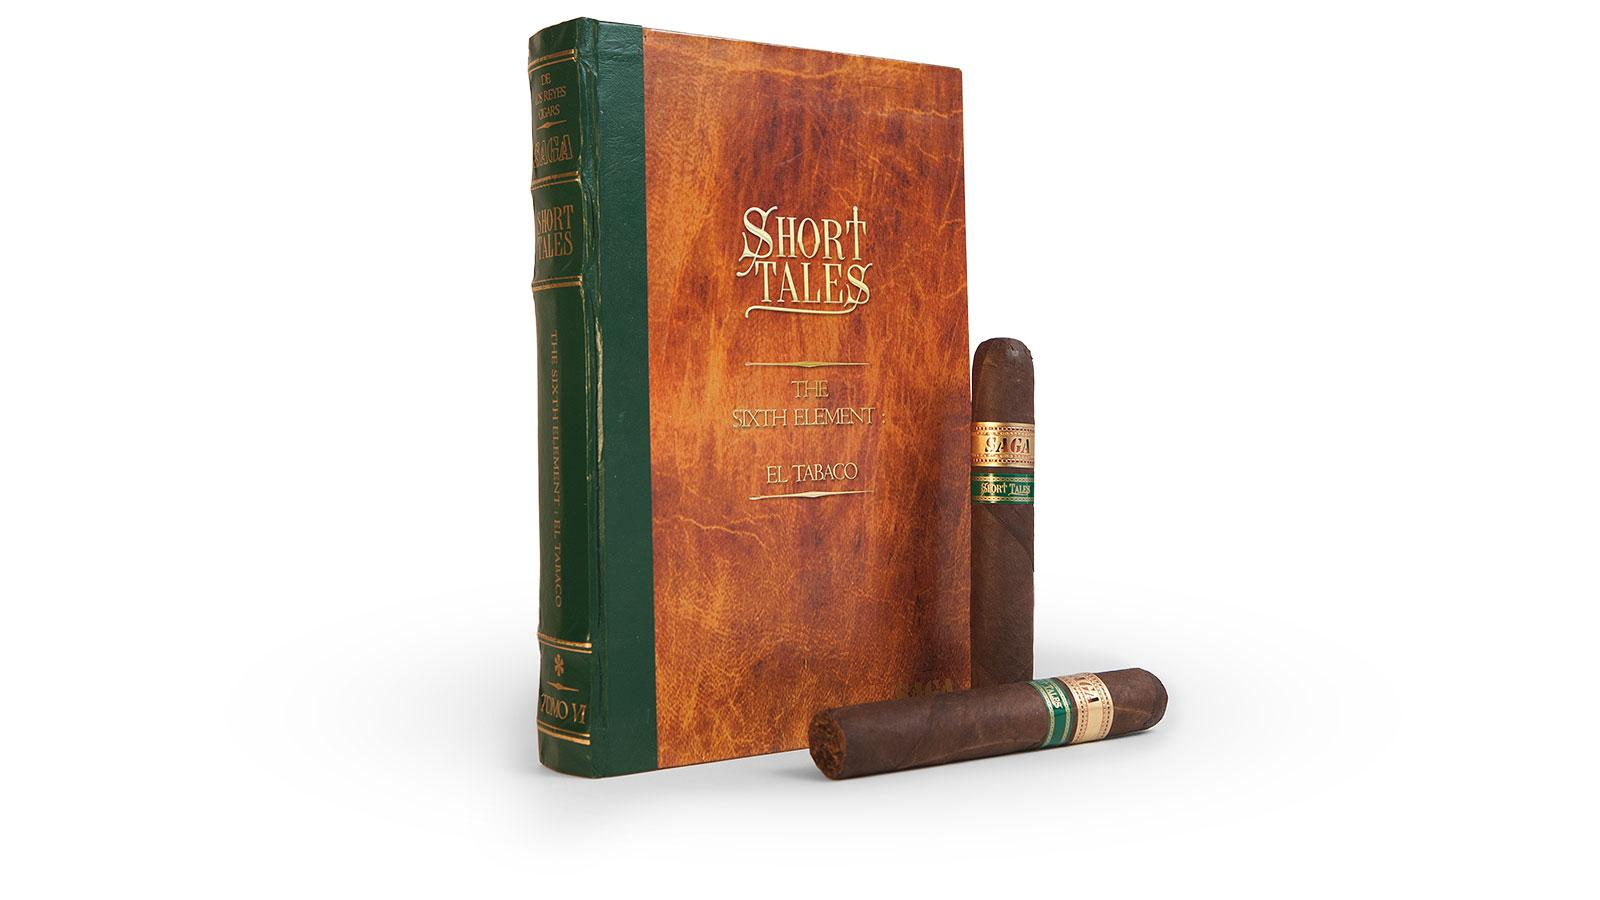 Cigars in the Saga Short Tales series come packaged in an interesting 10-count box made to look like an old volume of a vintage leather-bound book.